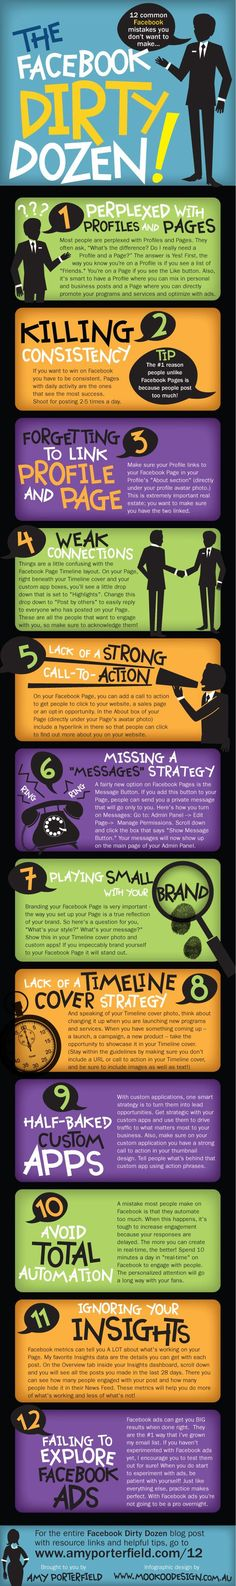 "SOCIAL MEDIA - 12 Facebook Common Mistakes you don't want to make: ""The #Facebook Dirty Dozen. #Infographic shared by The Digital Entrepreneurs""."